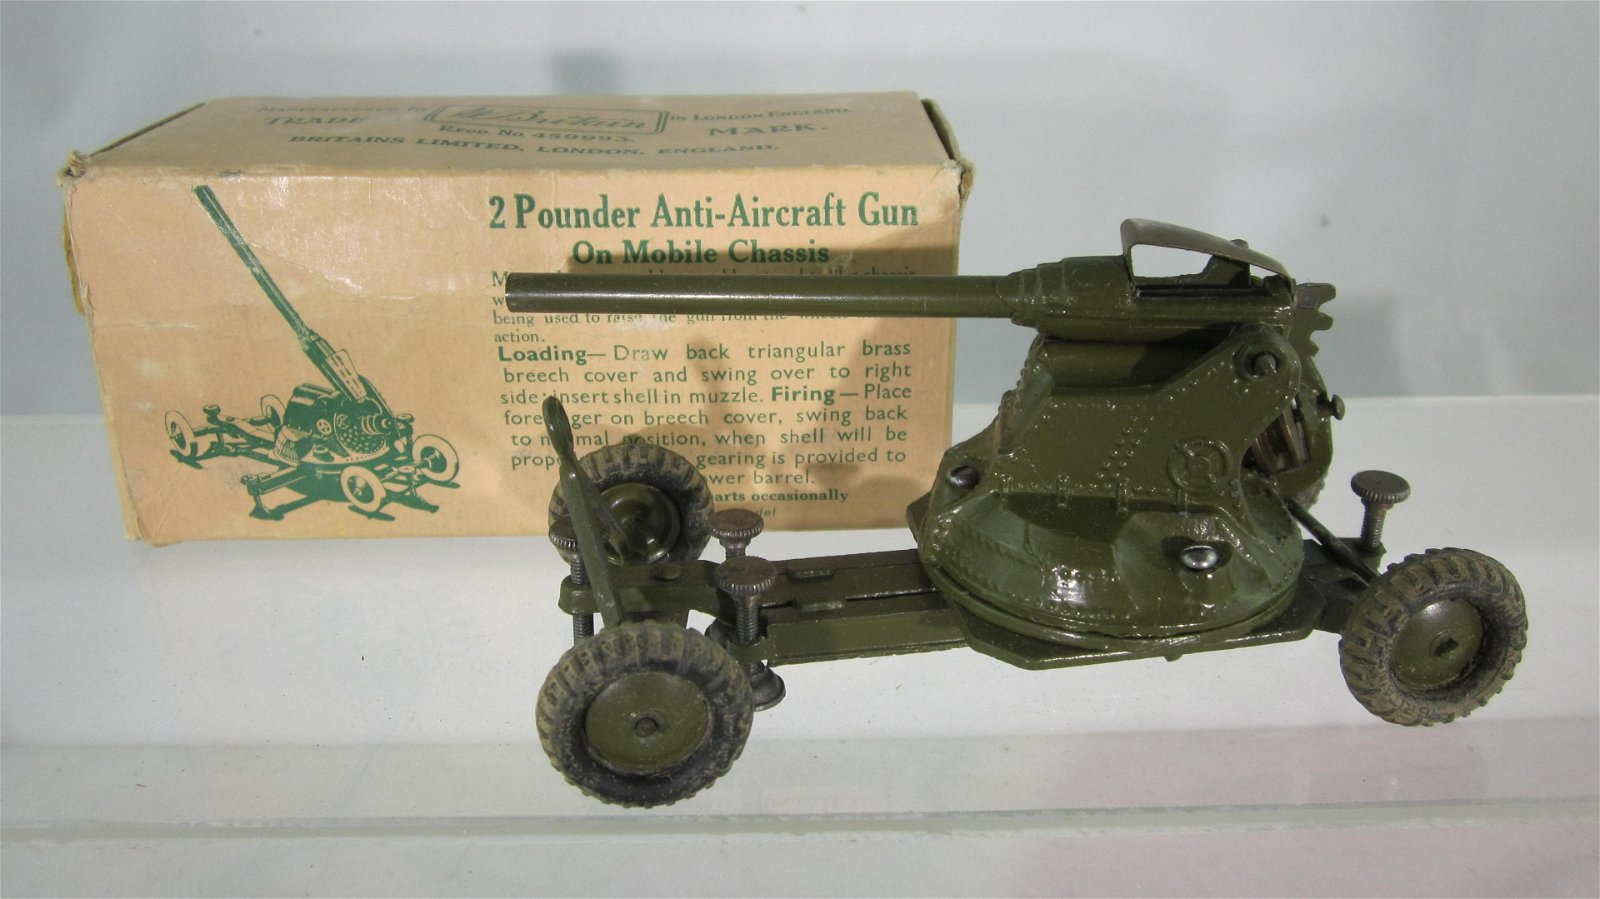 Britains Set #1717 2 Pounder Anti-Aircraft Gun.